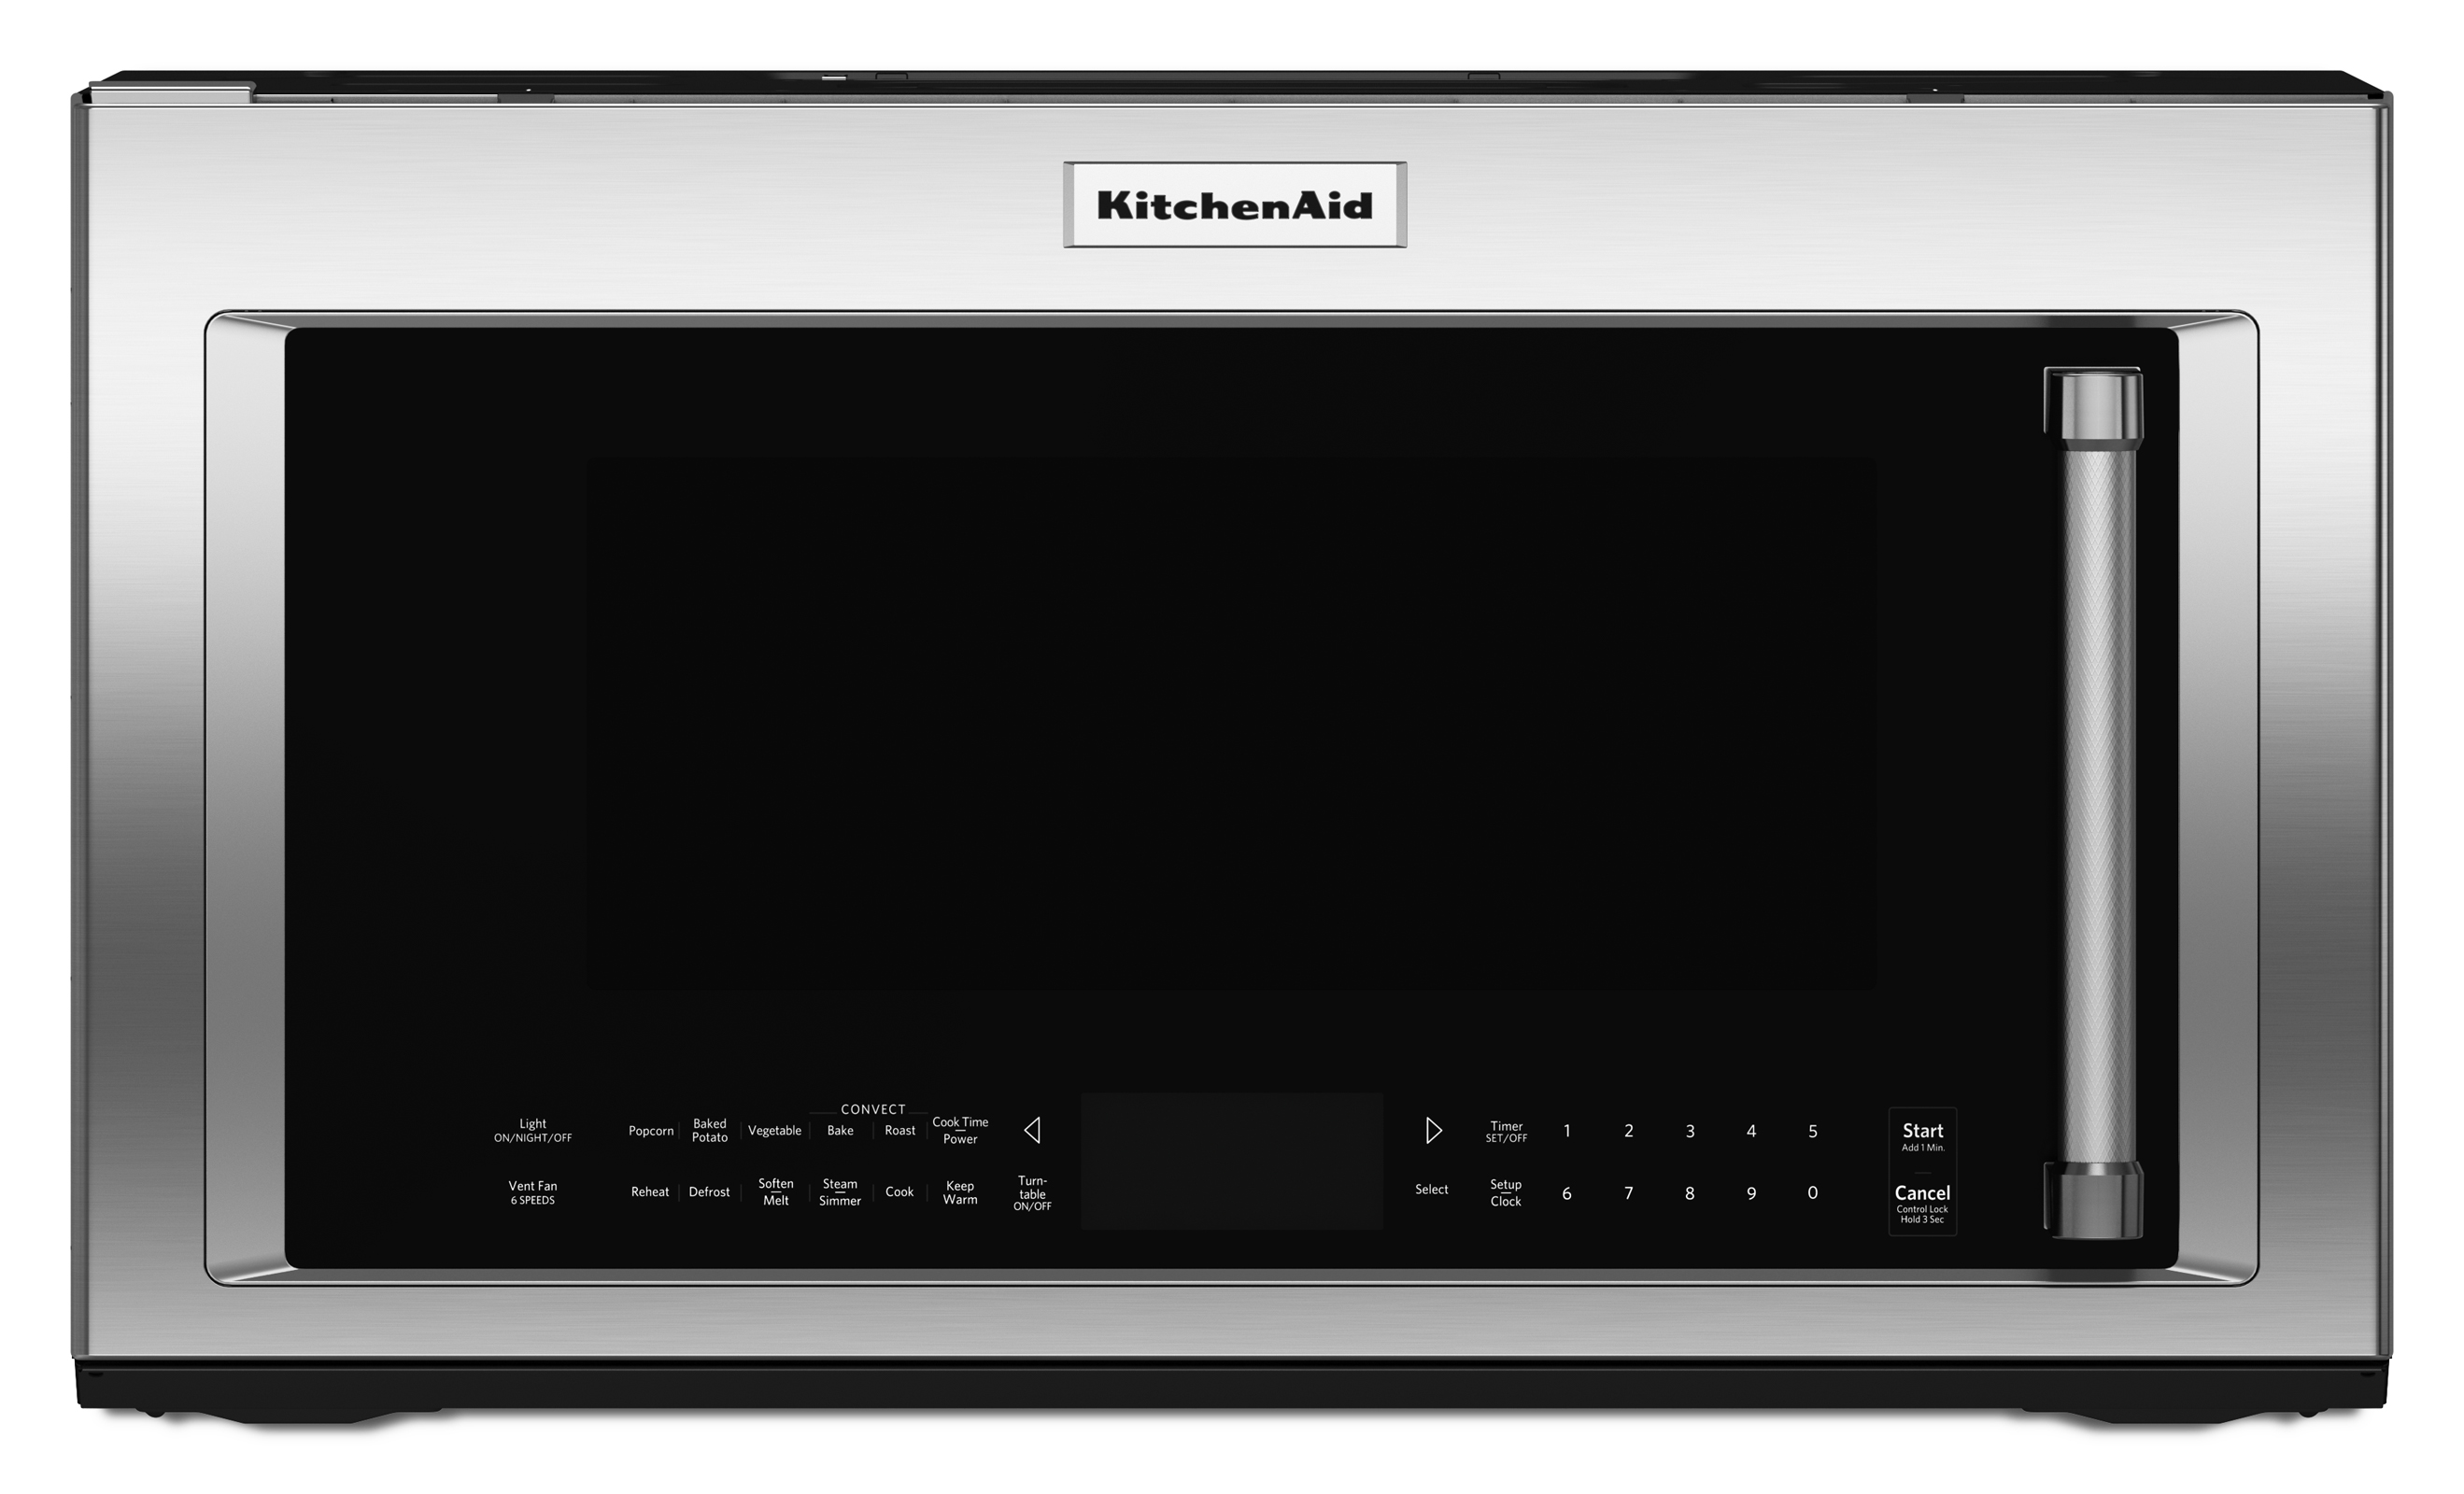 KitchenAid KMHC319ESS 1.1.9 cu. ft. 1000W Convection Microwave Oven - Stainless Steel